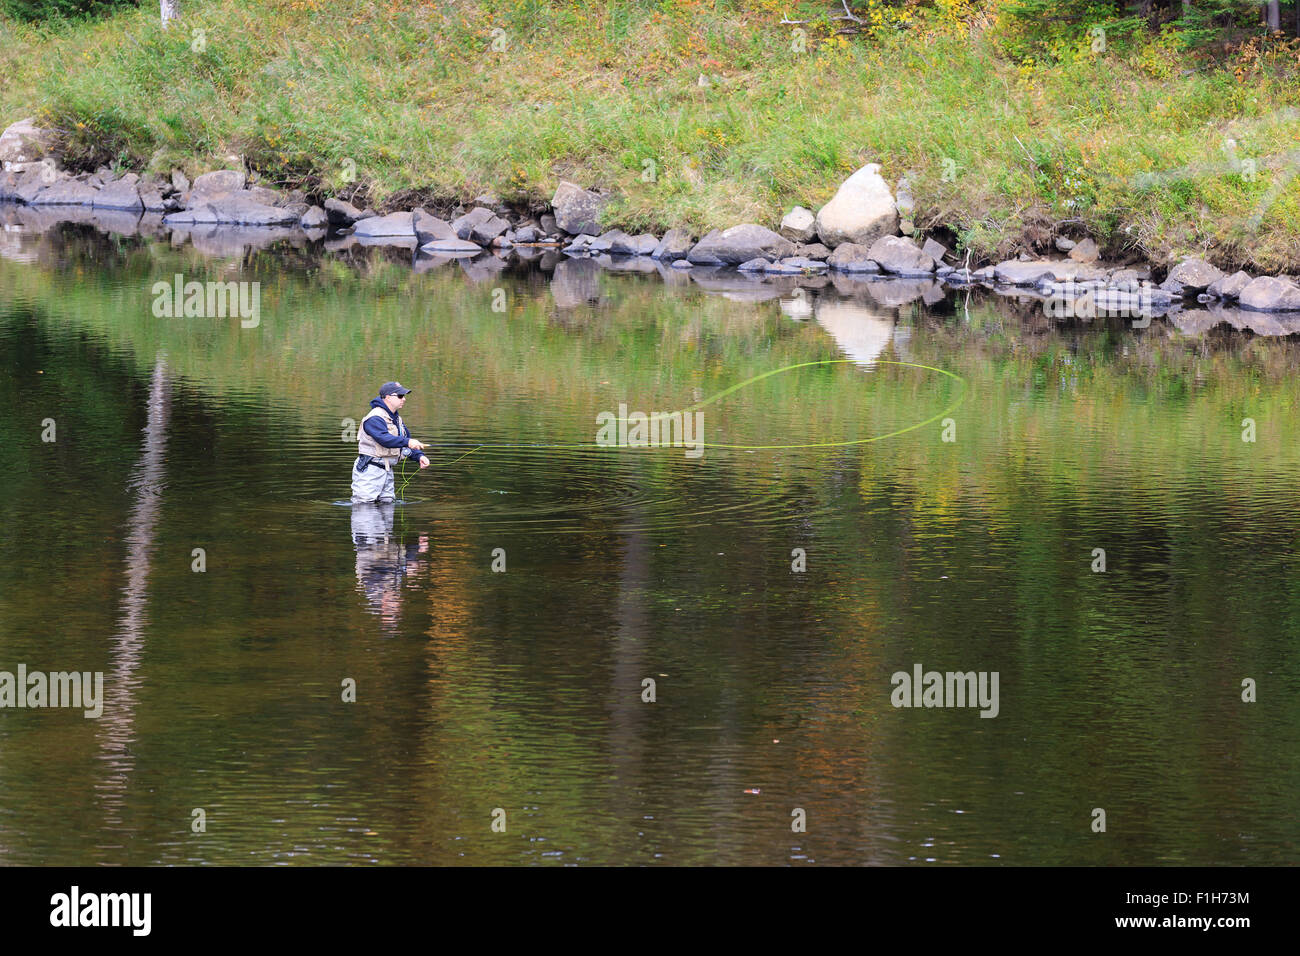 Man fly fishing in a river in upstate New York in Adirondacks State Park - Stock Image